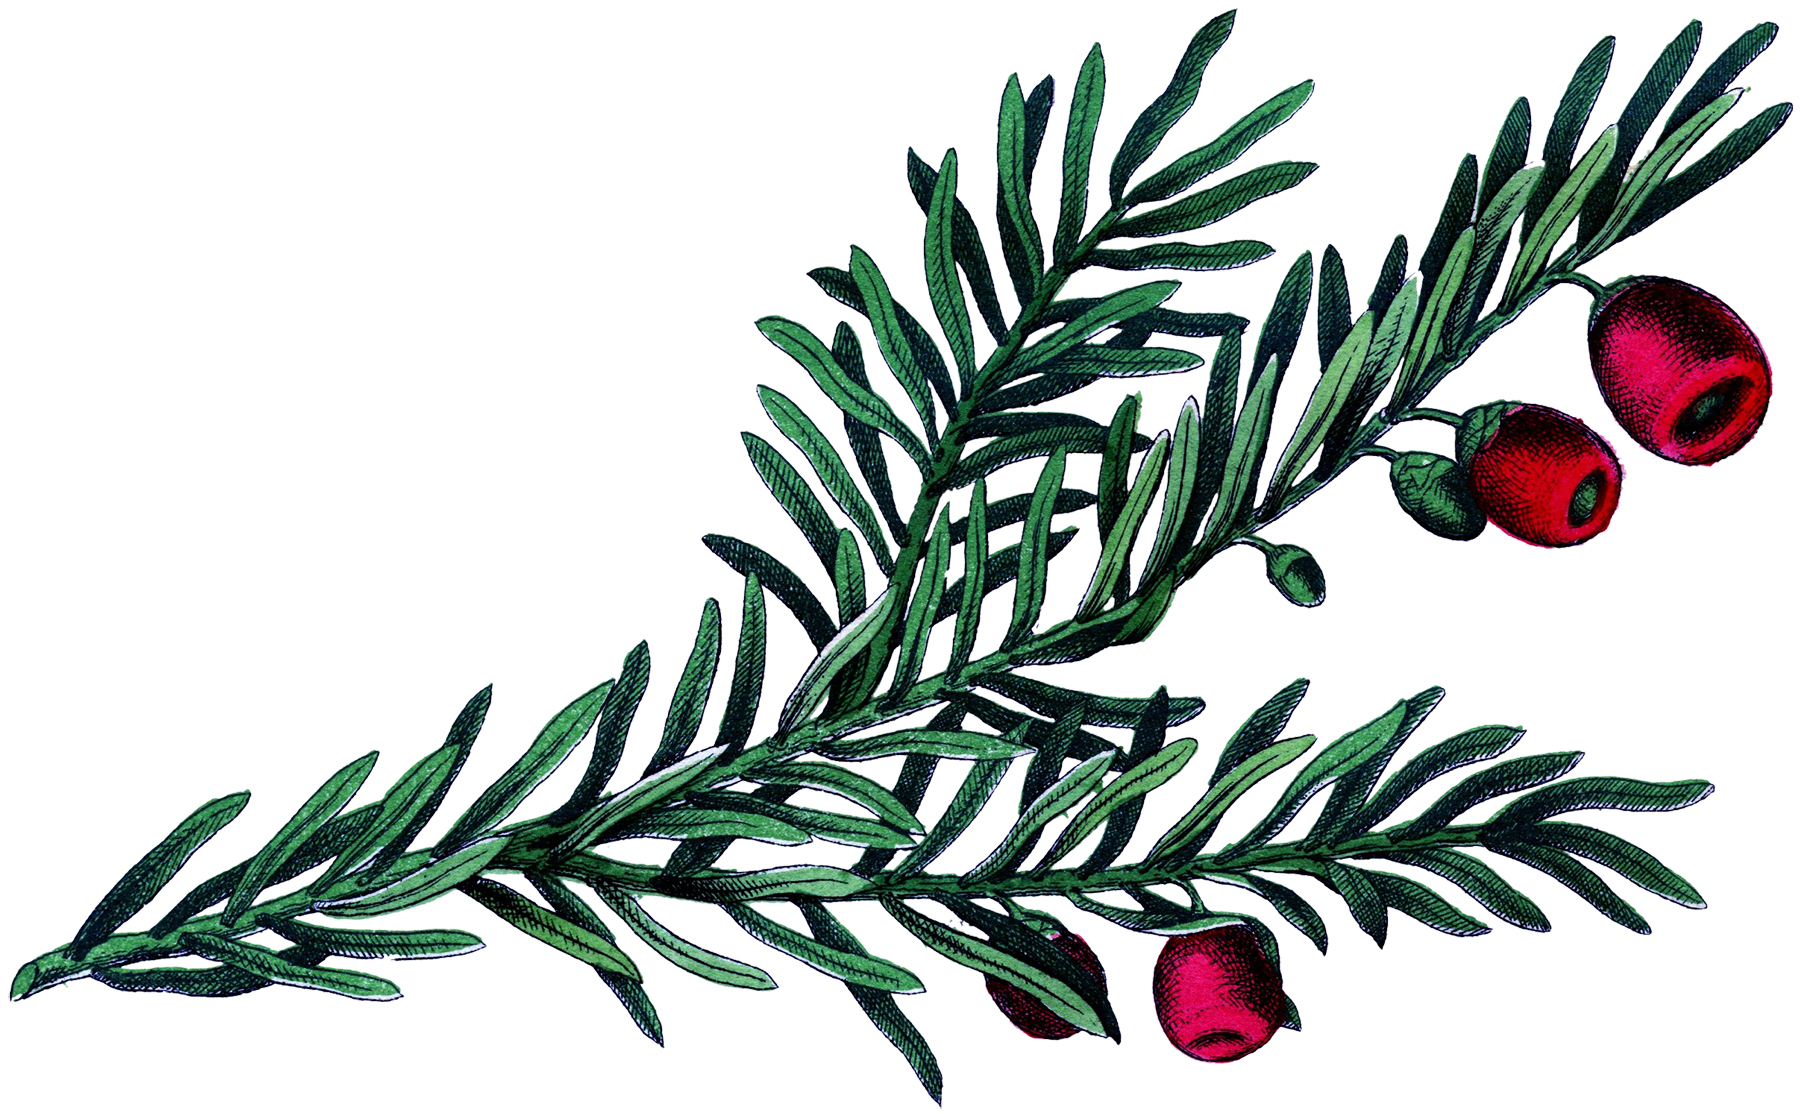 Botanical Yew Branch Image